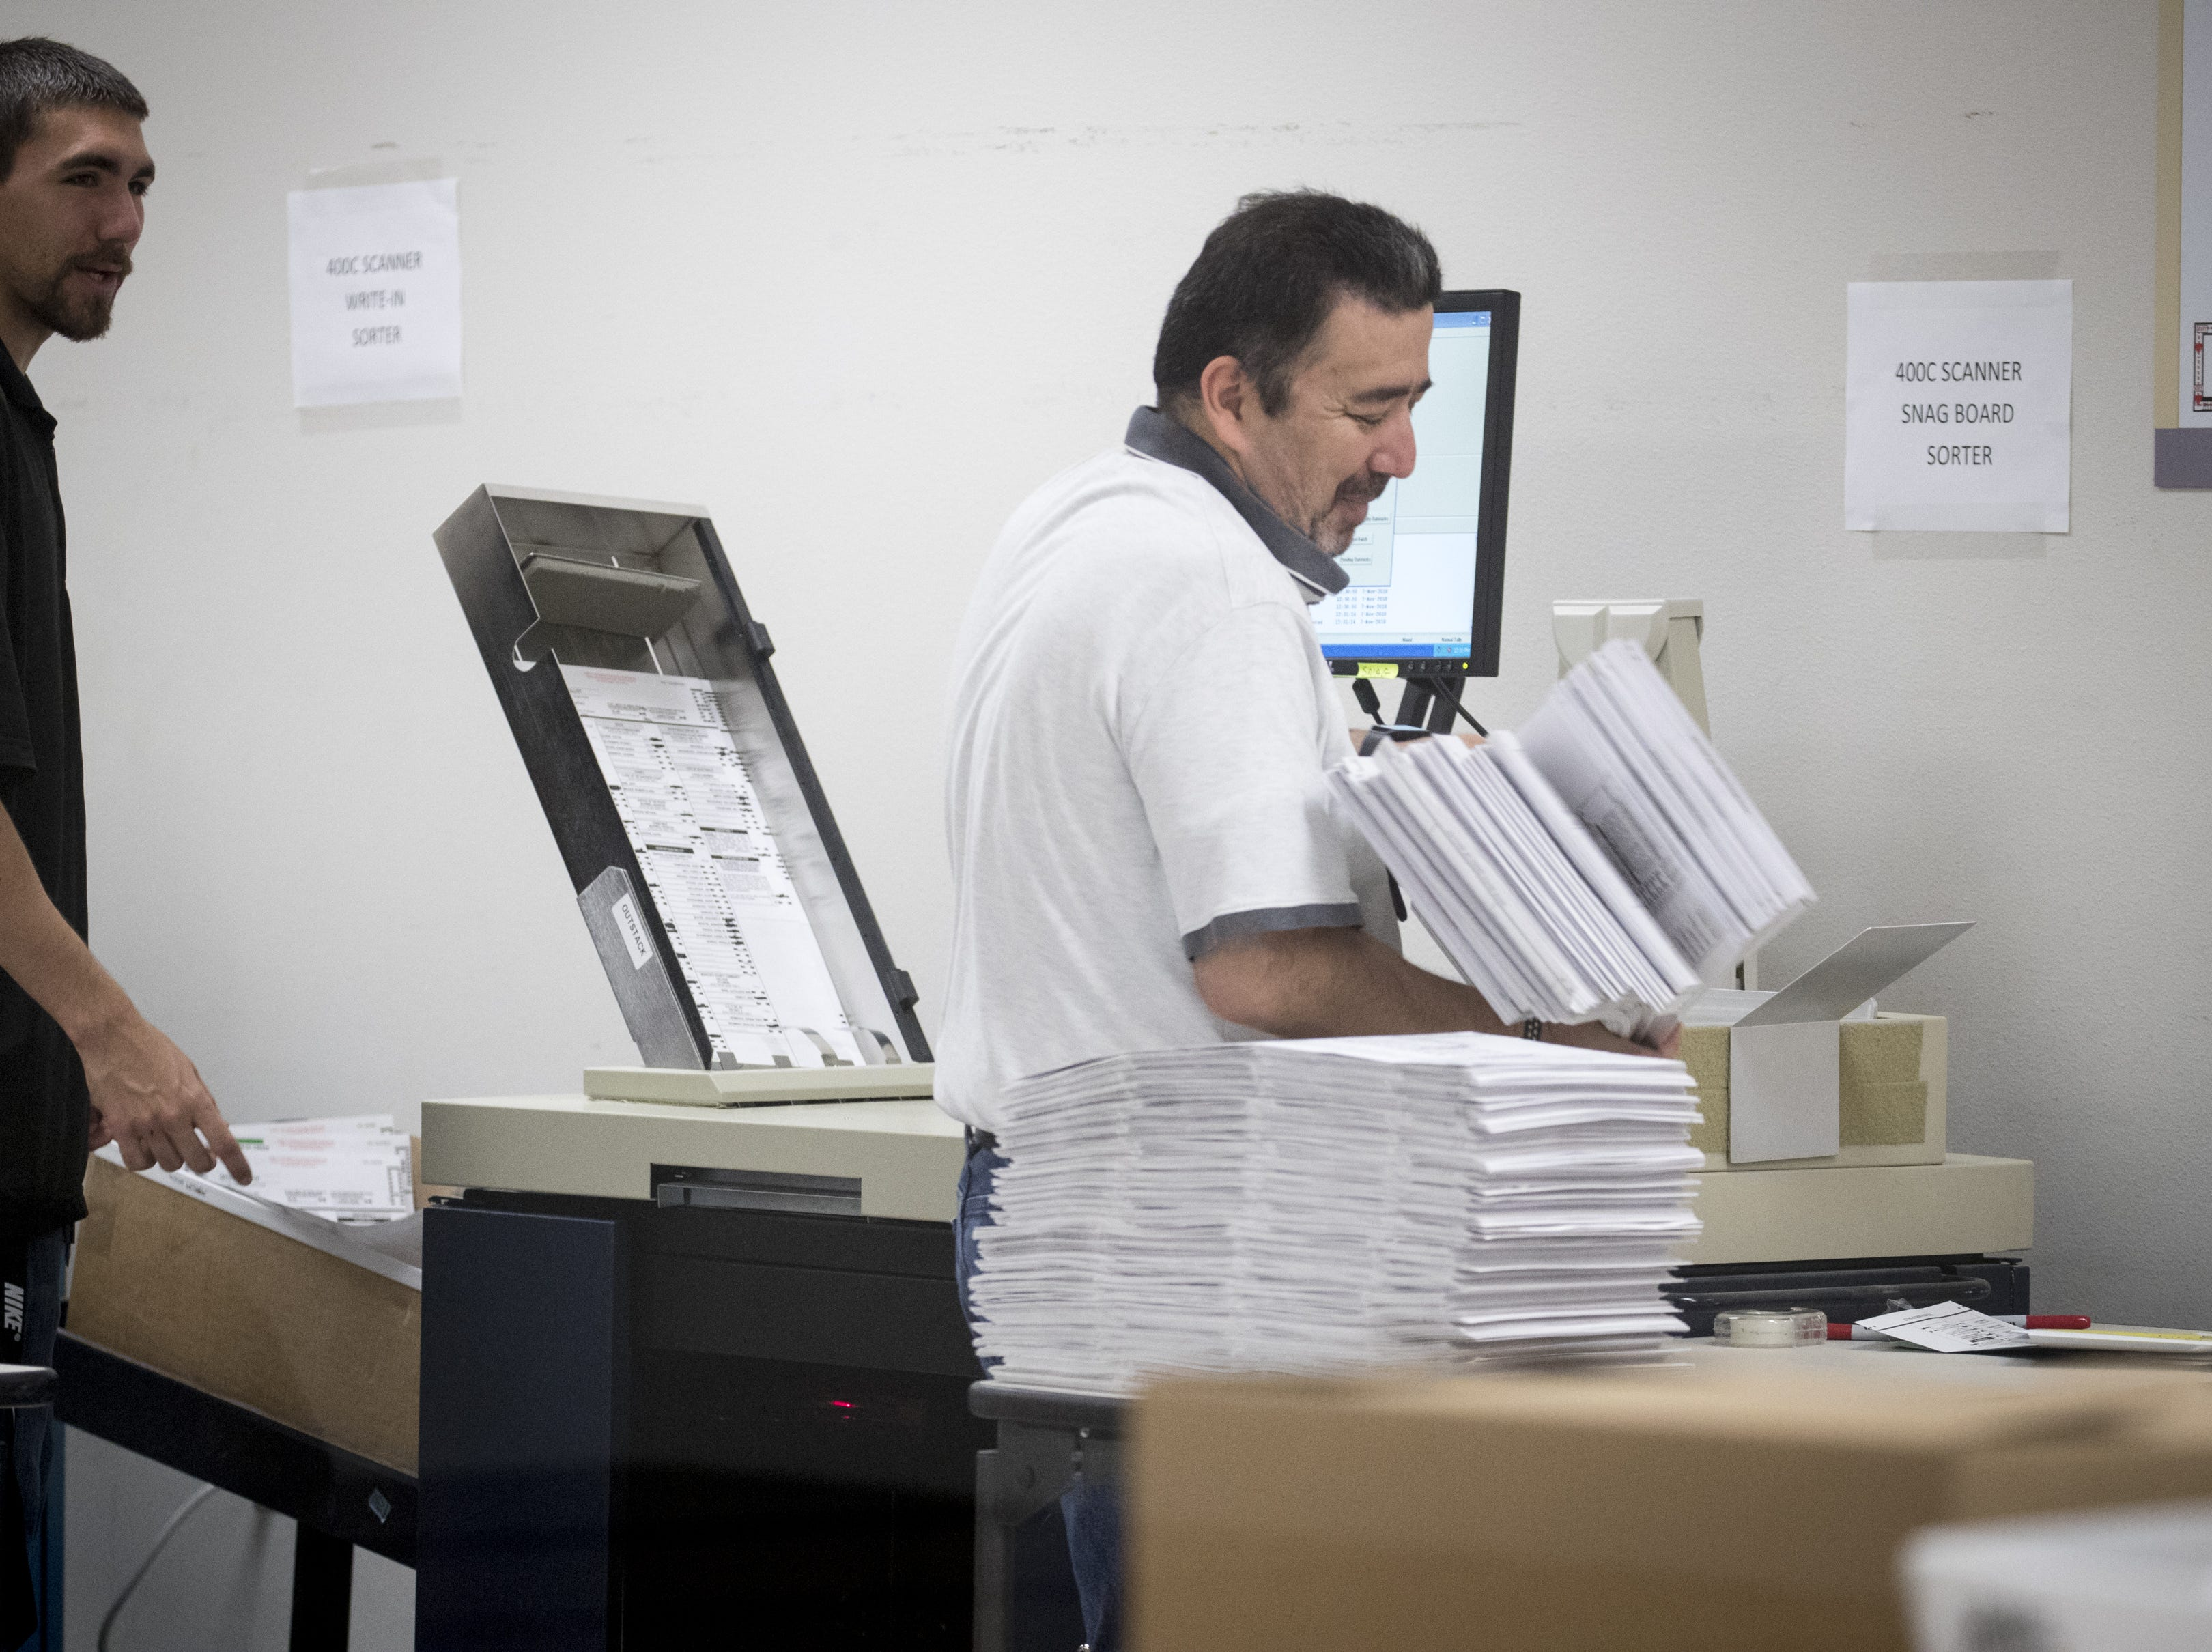 Gary Ramirez (right) processes ballots on Nov. 7, 2018, at the Maricopa County Tabulation and Election Center, 510 S. 3rd Ave., Phoenix.